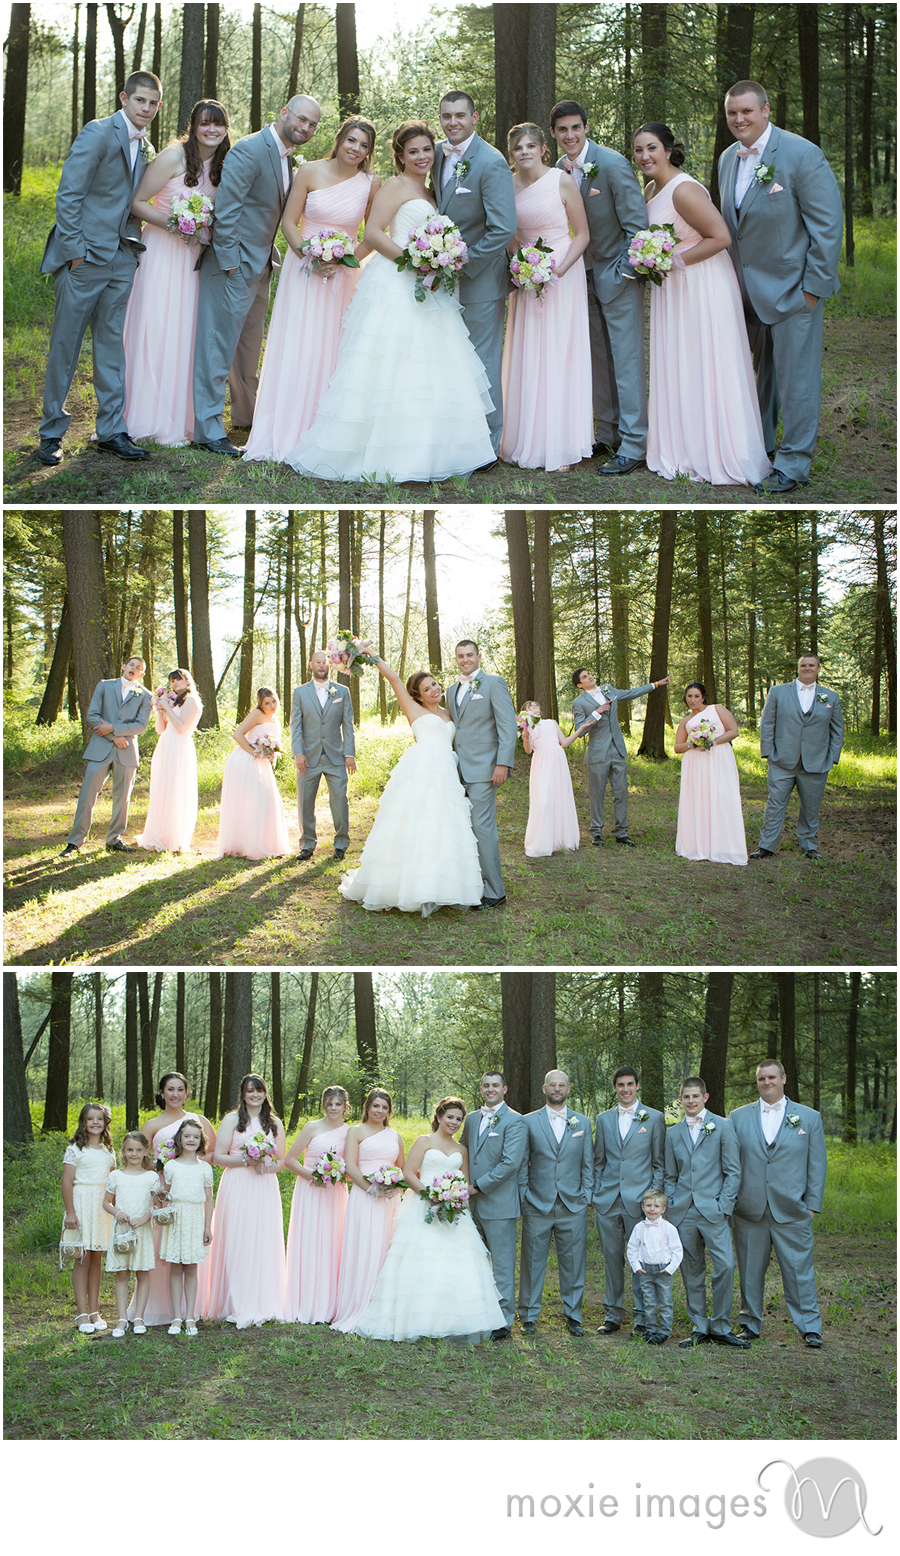 Spokane wedding party